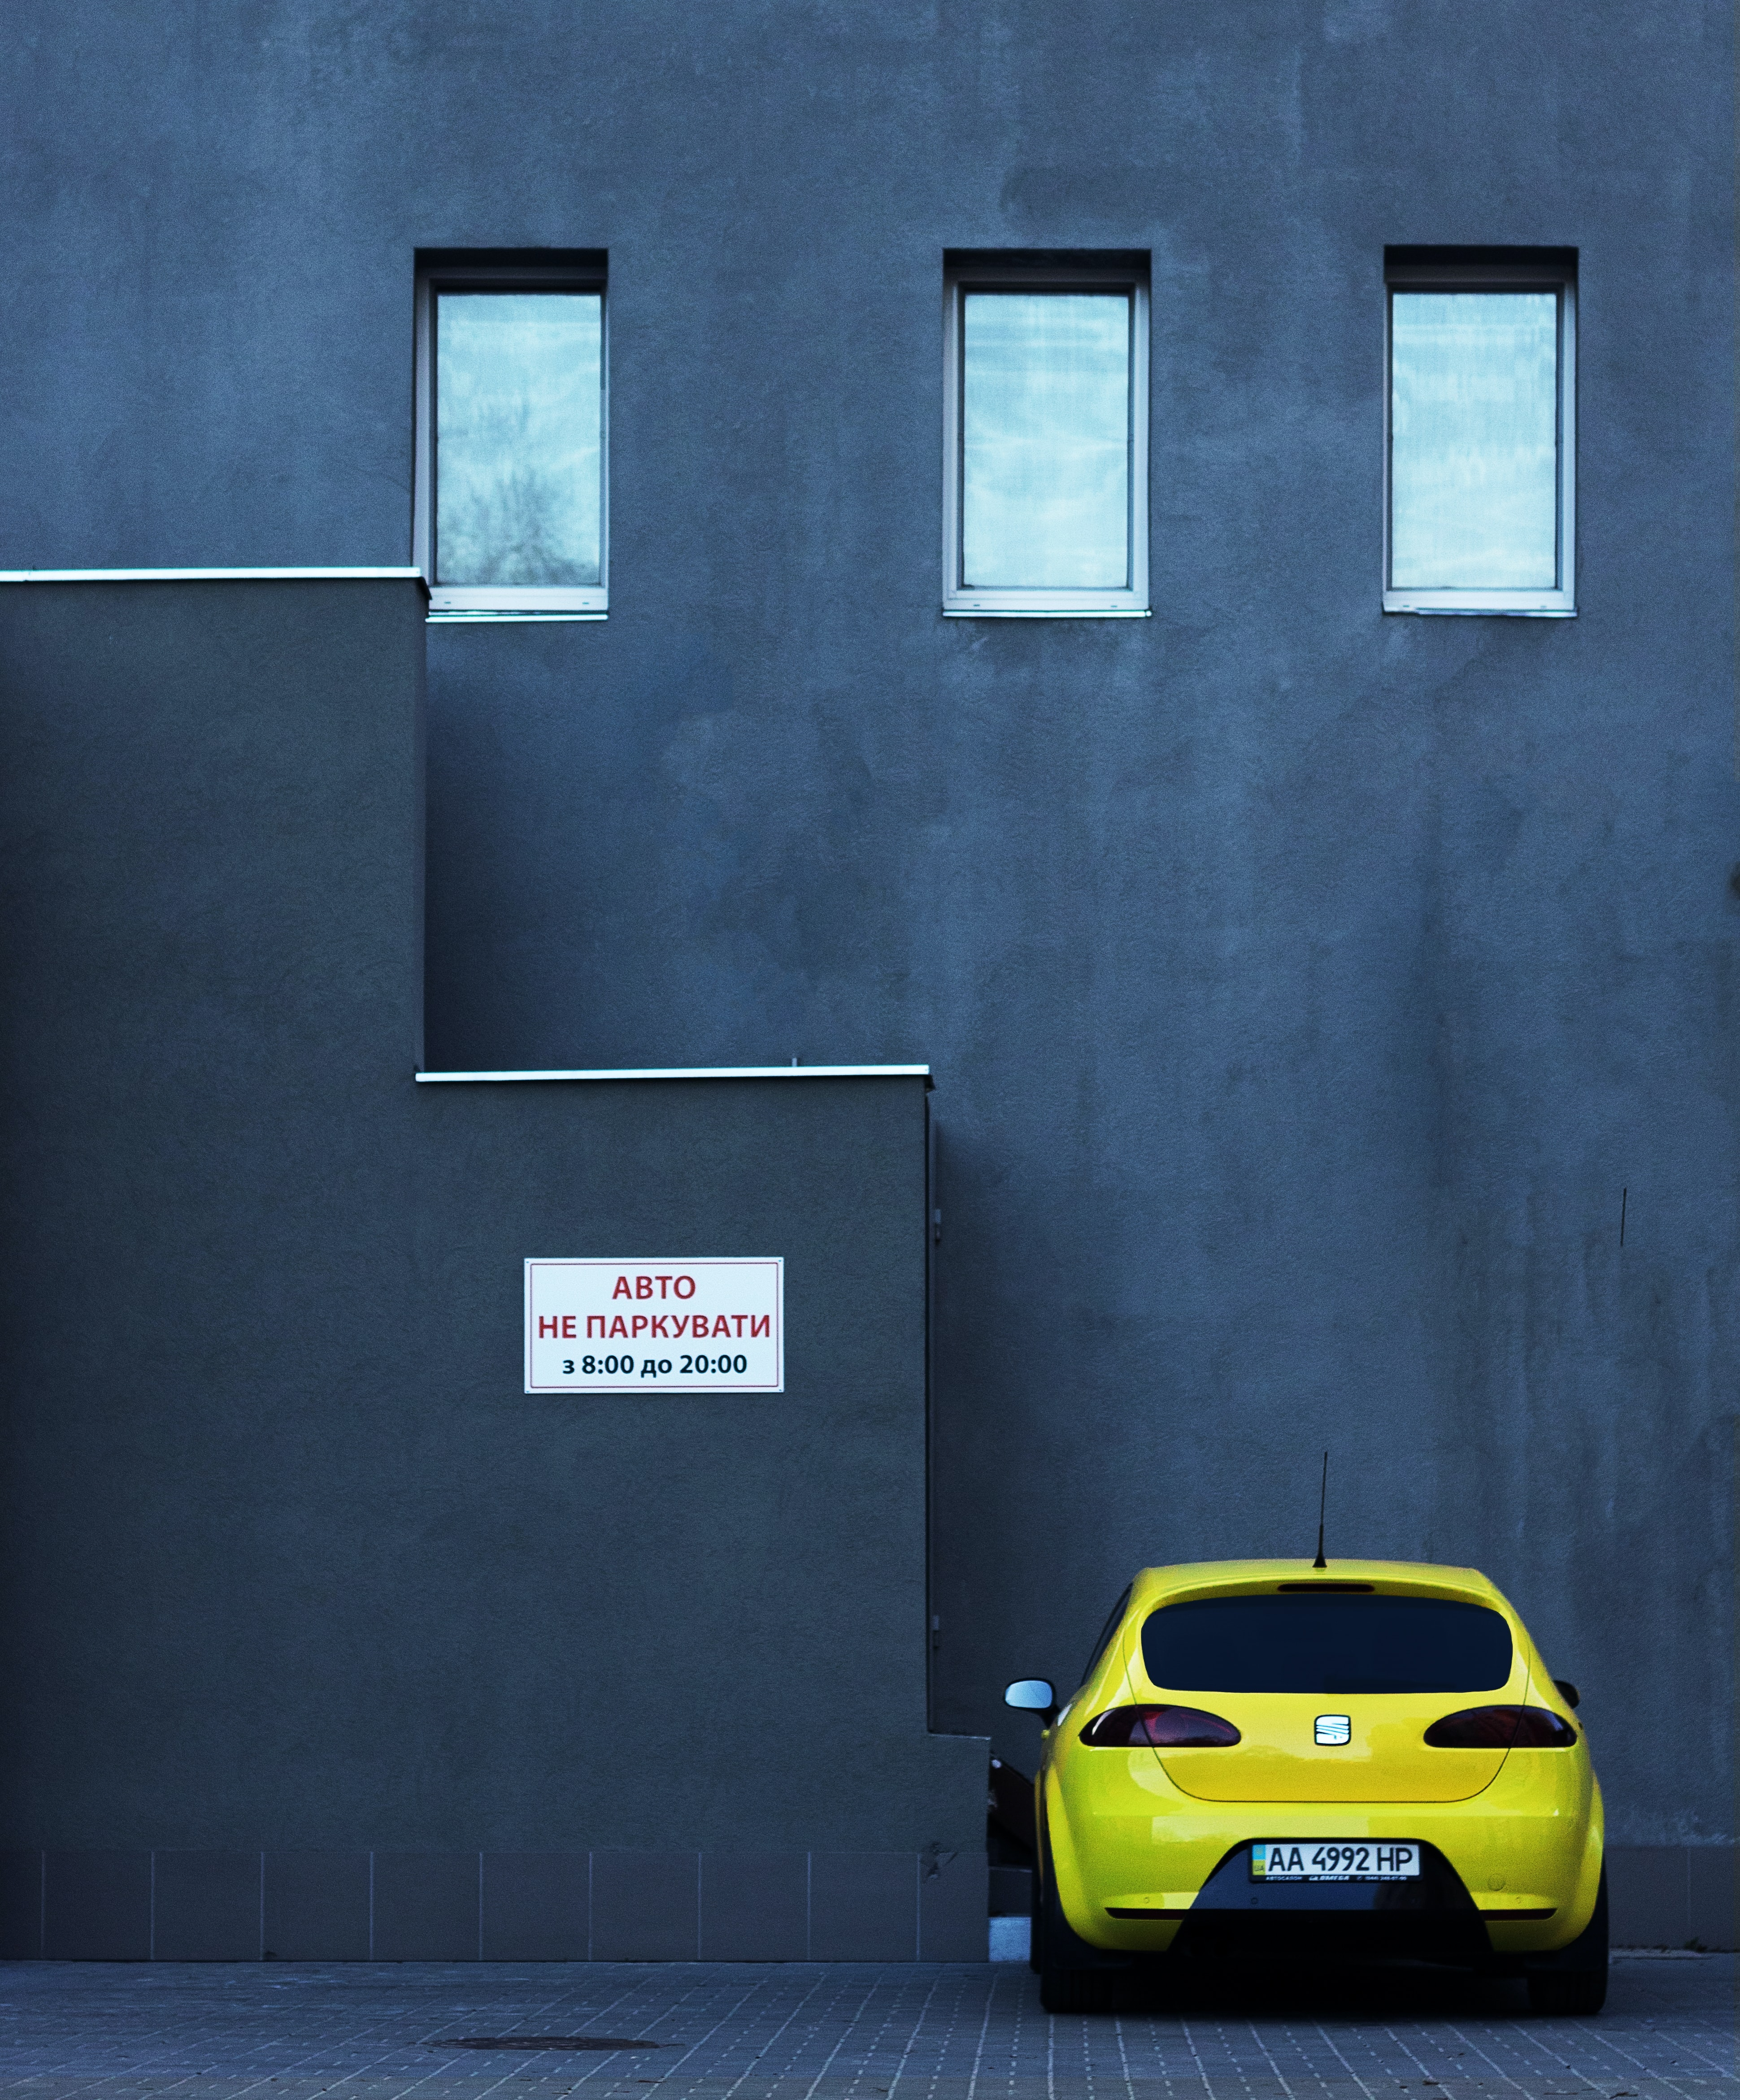 Parked yellow SEAT car next to gray urban building with three windows and white sign